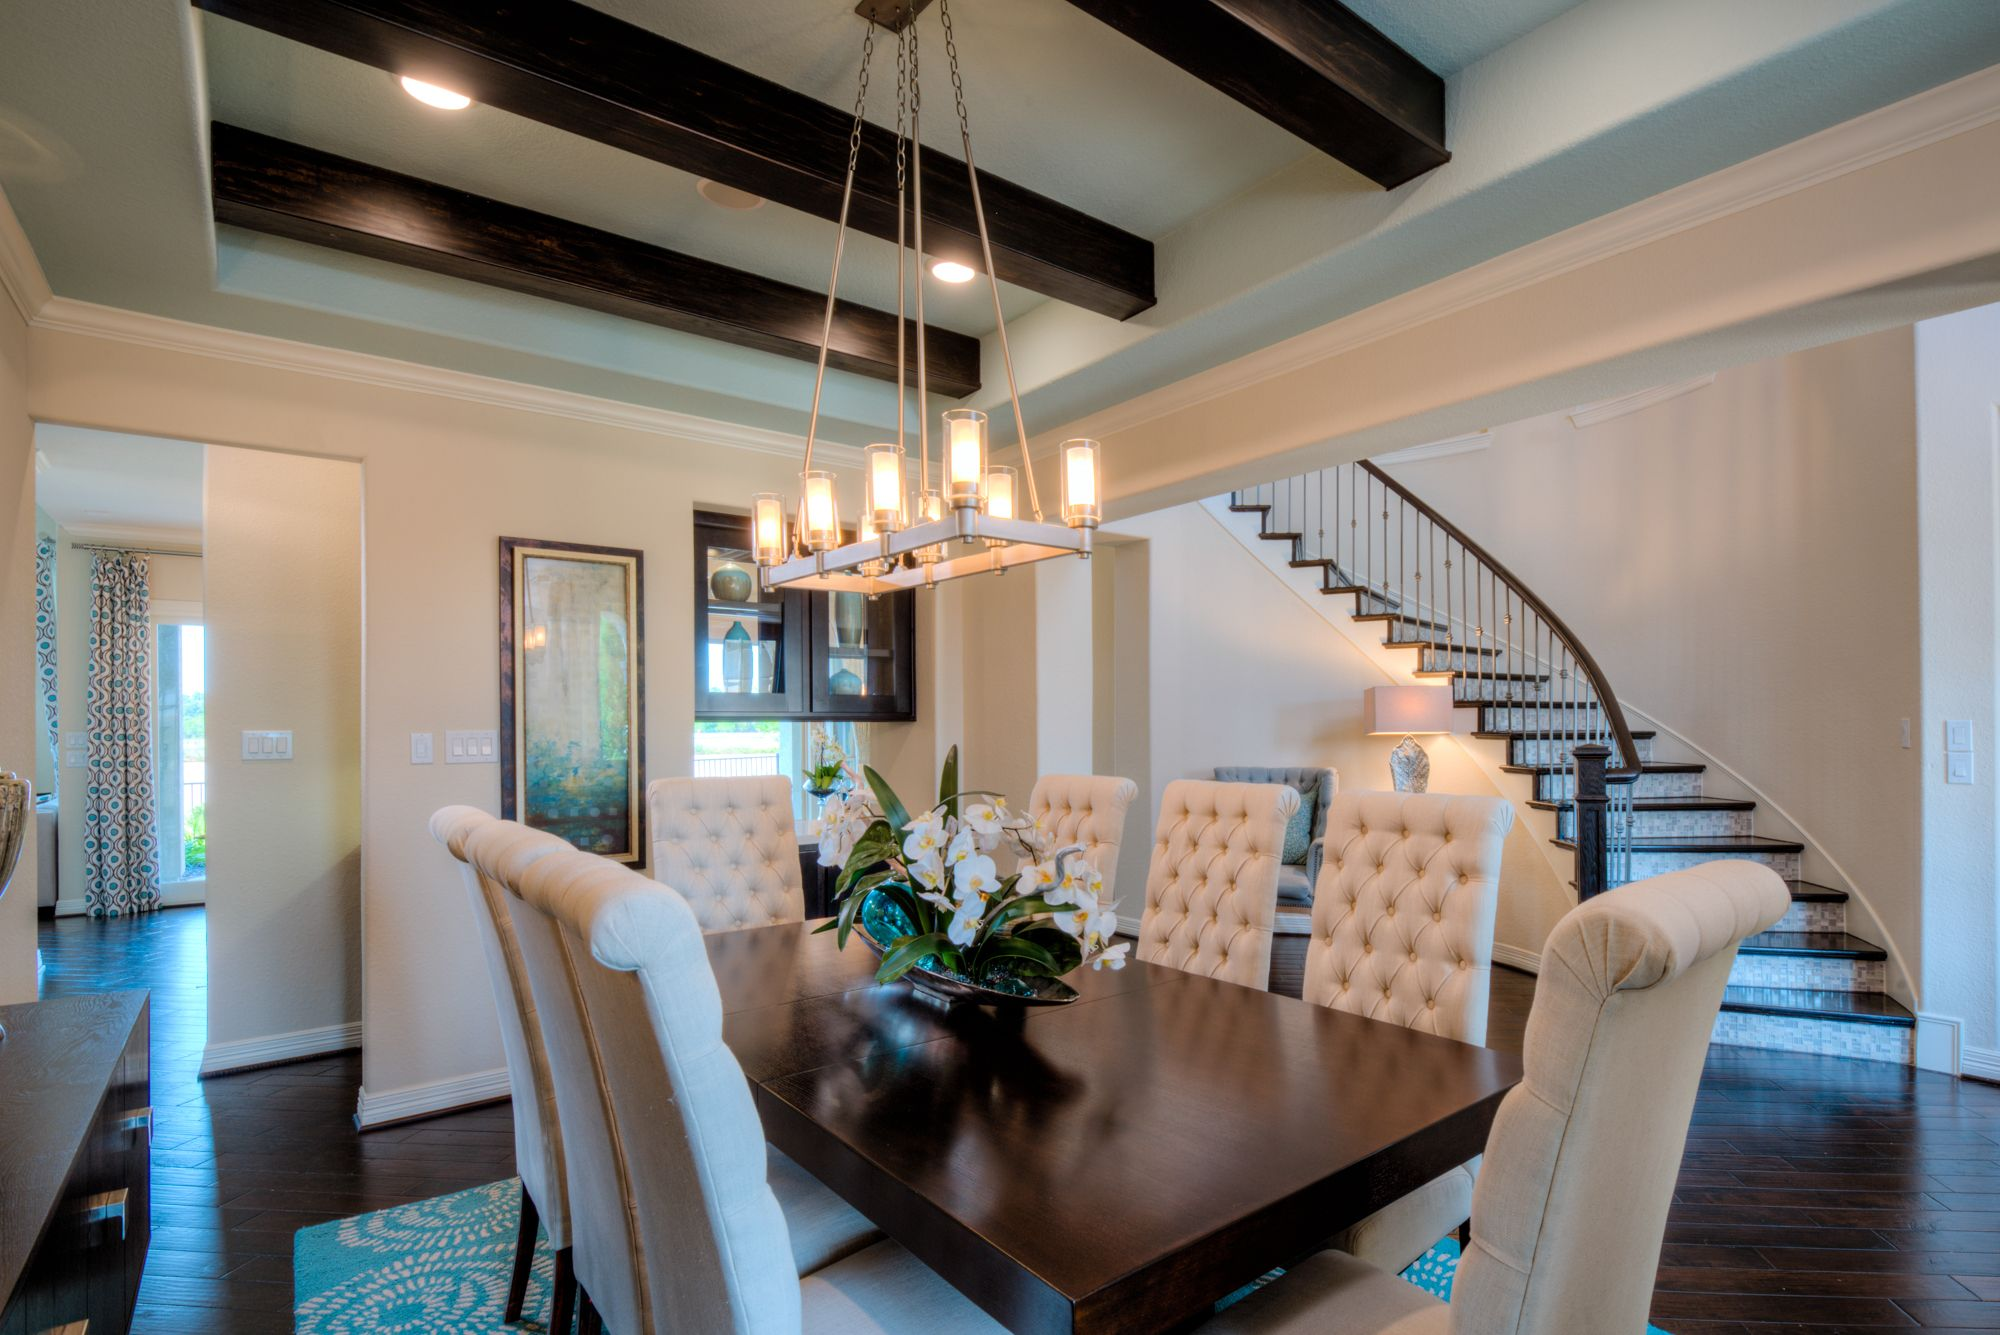 Rejoice in beautiful designs… newhome dreamhome